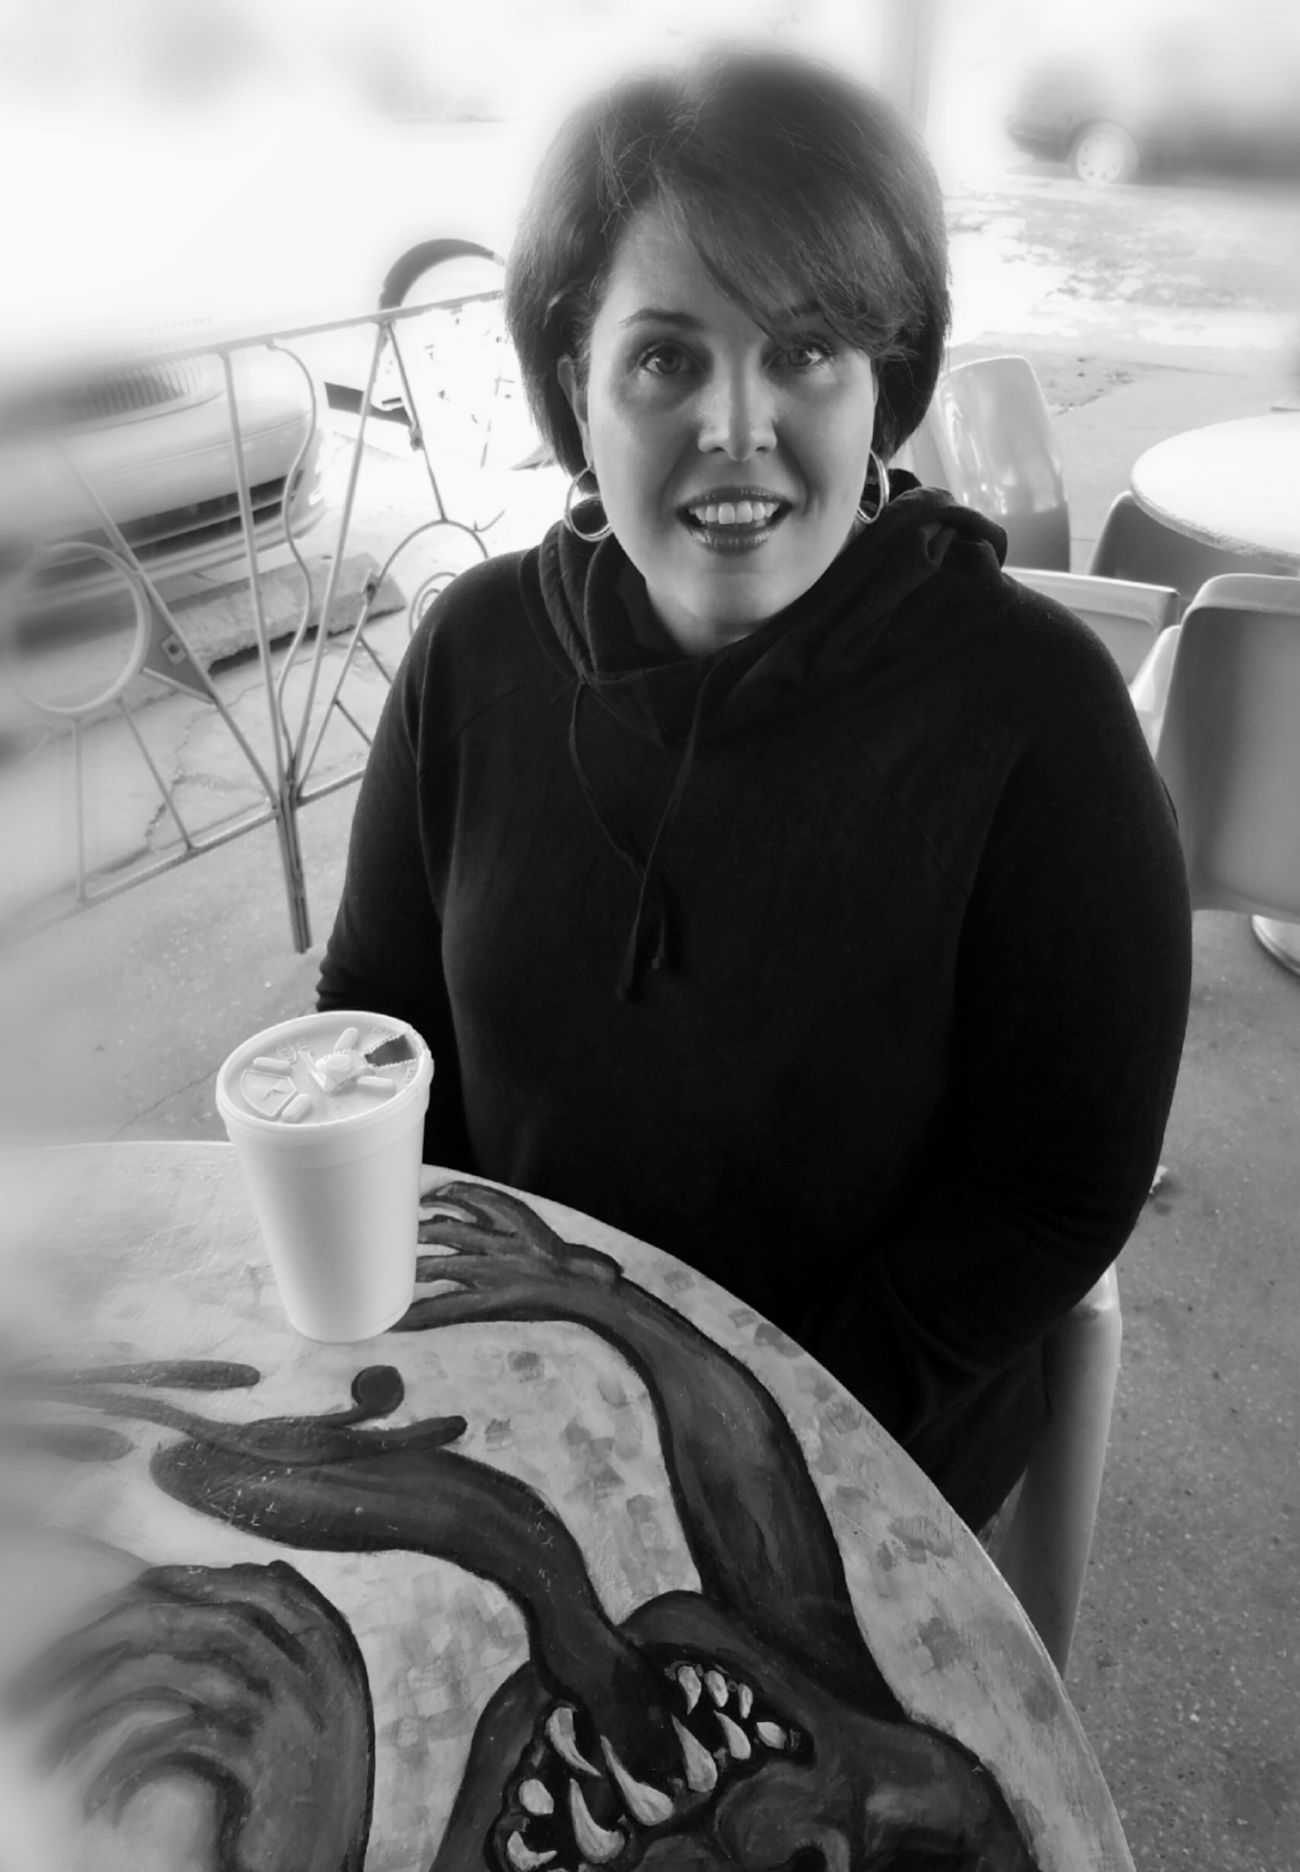 The Greedy Stranger... Black And White Cappuccino ☕️ Coffee Time Day Drink Looking At Camera MUR B&W One Person Outdoors People Portrait Real People Sitting Smiling Woman Portrait Young Adult Young Women The Portraitist - 2017 EyeEm Awards BYOPaper!